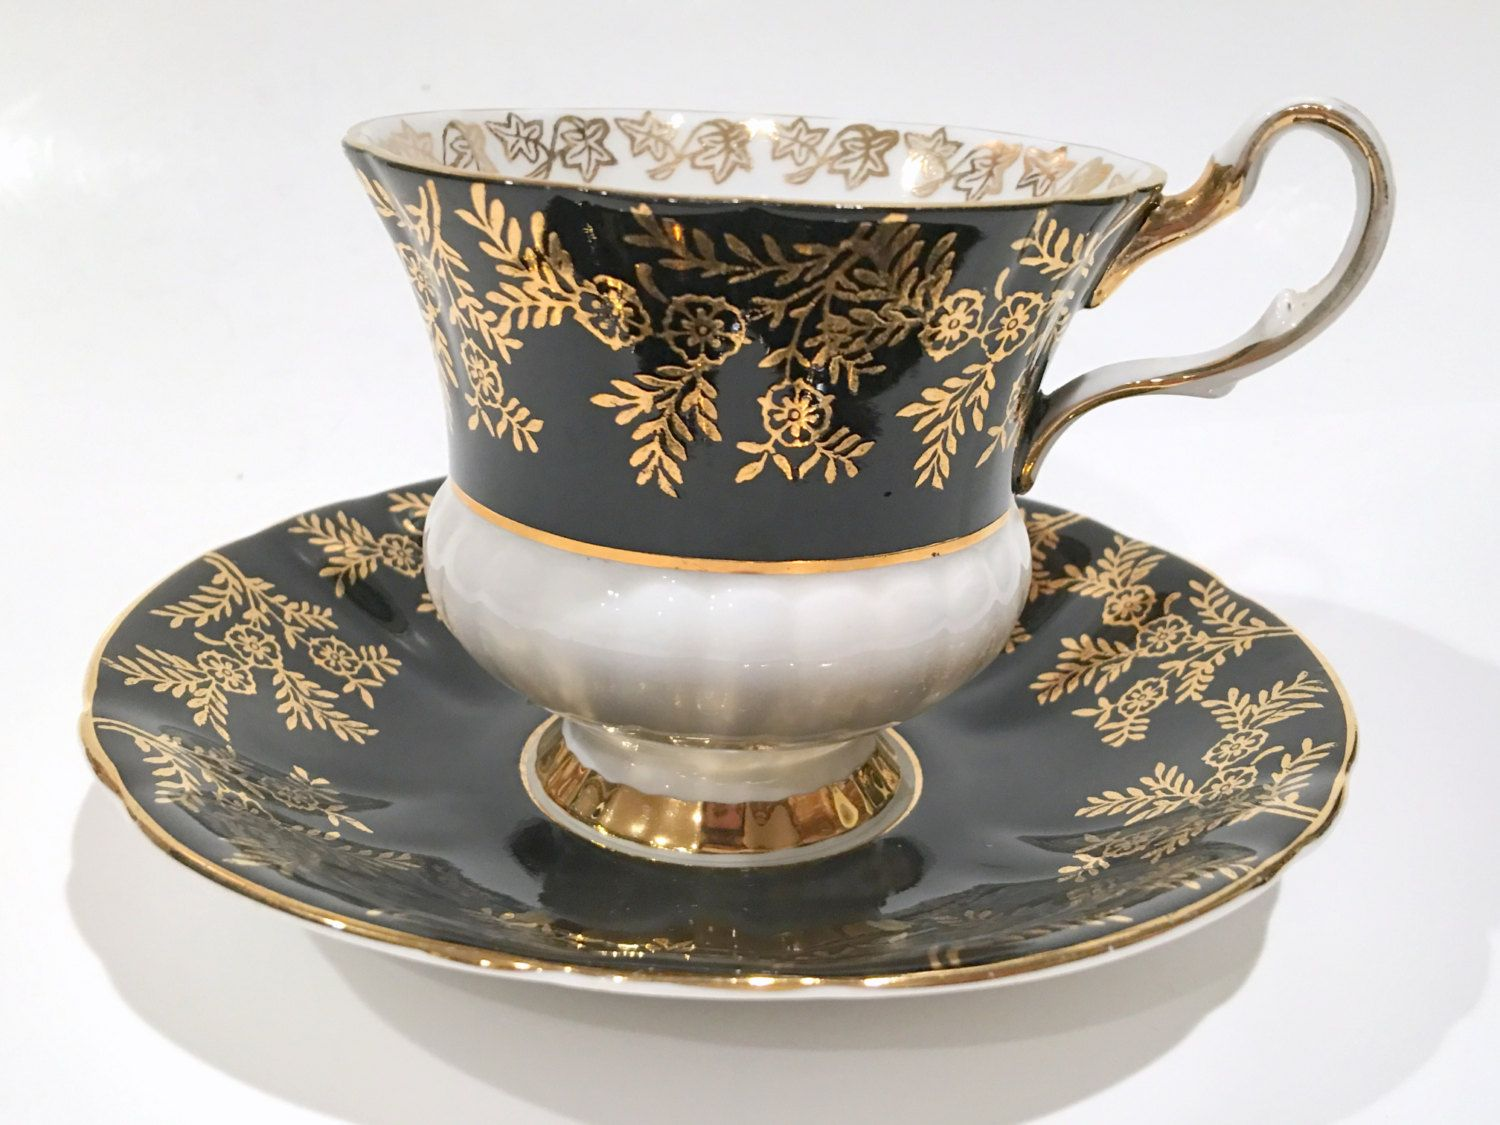 Society Tea Cup And Saucer Black White Cups Set Bone China